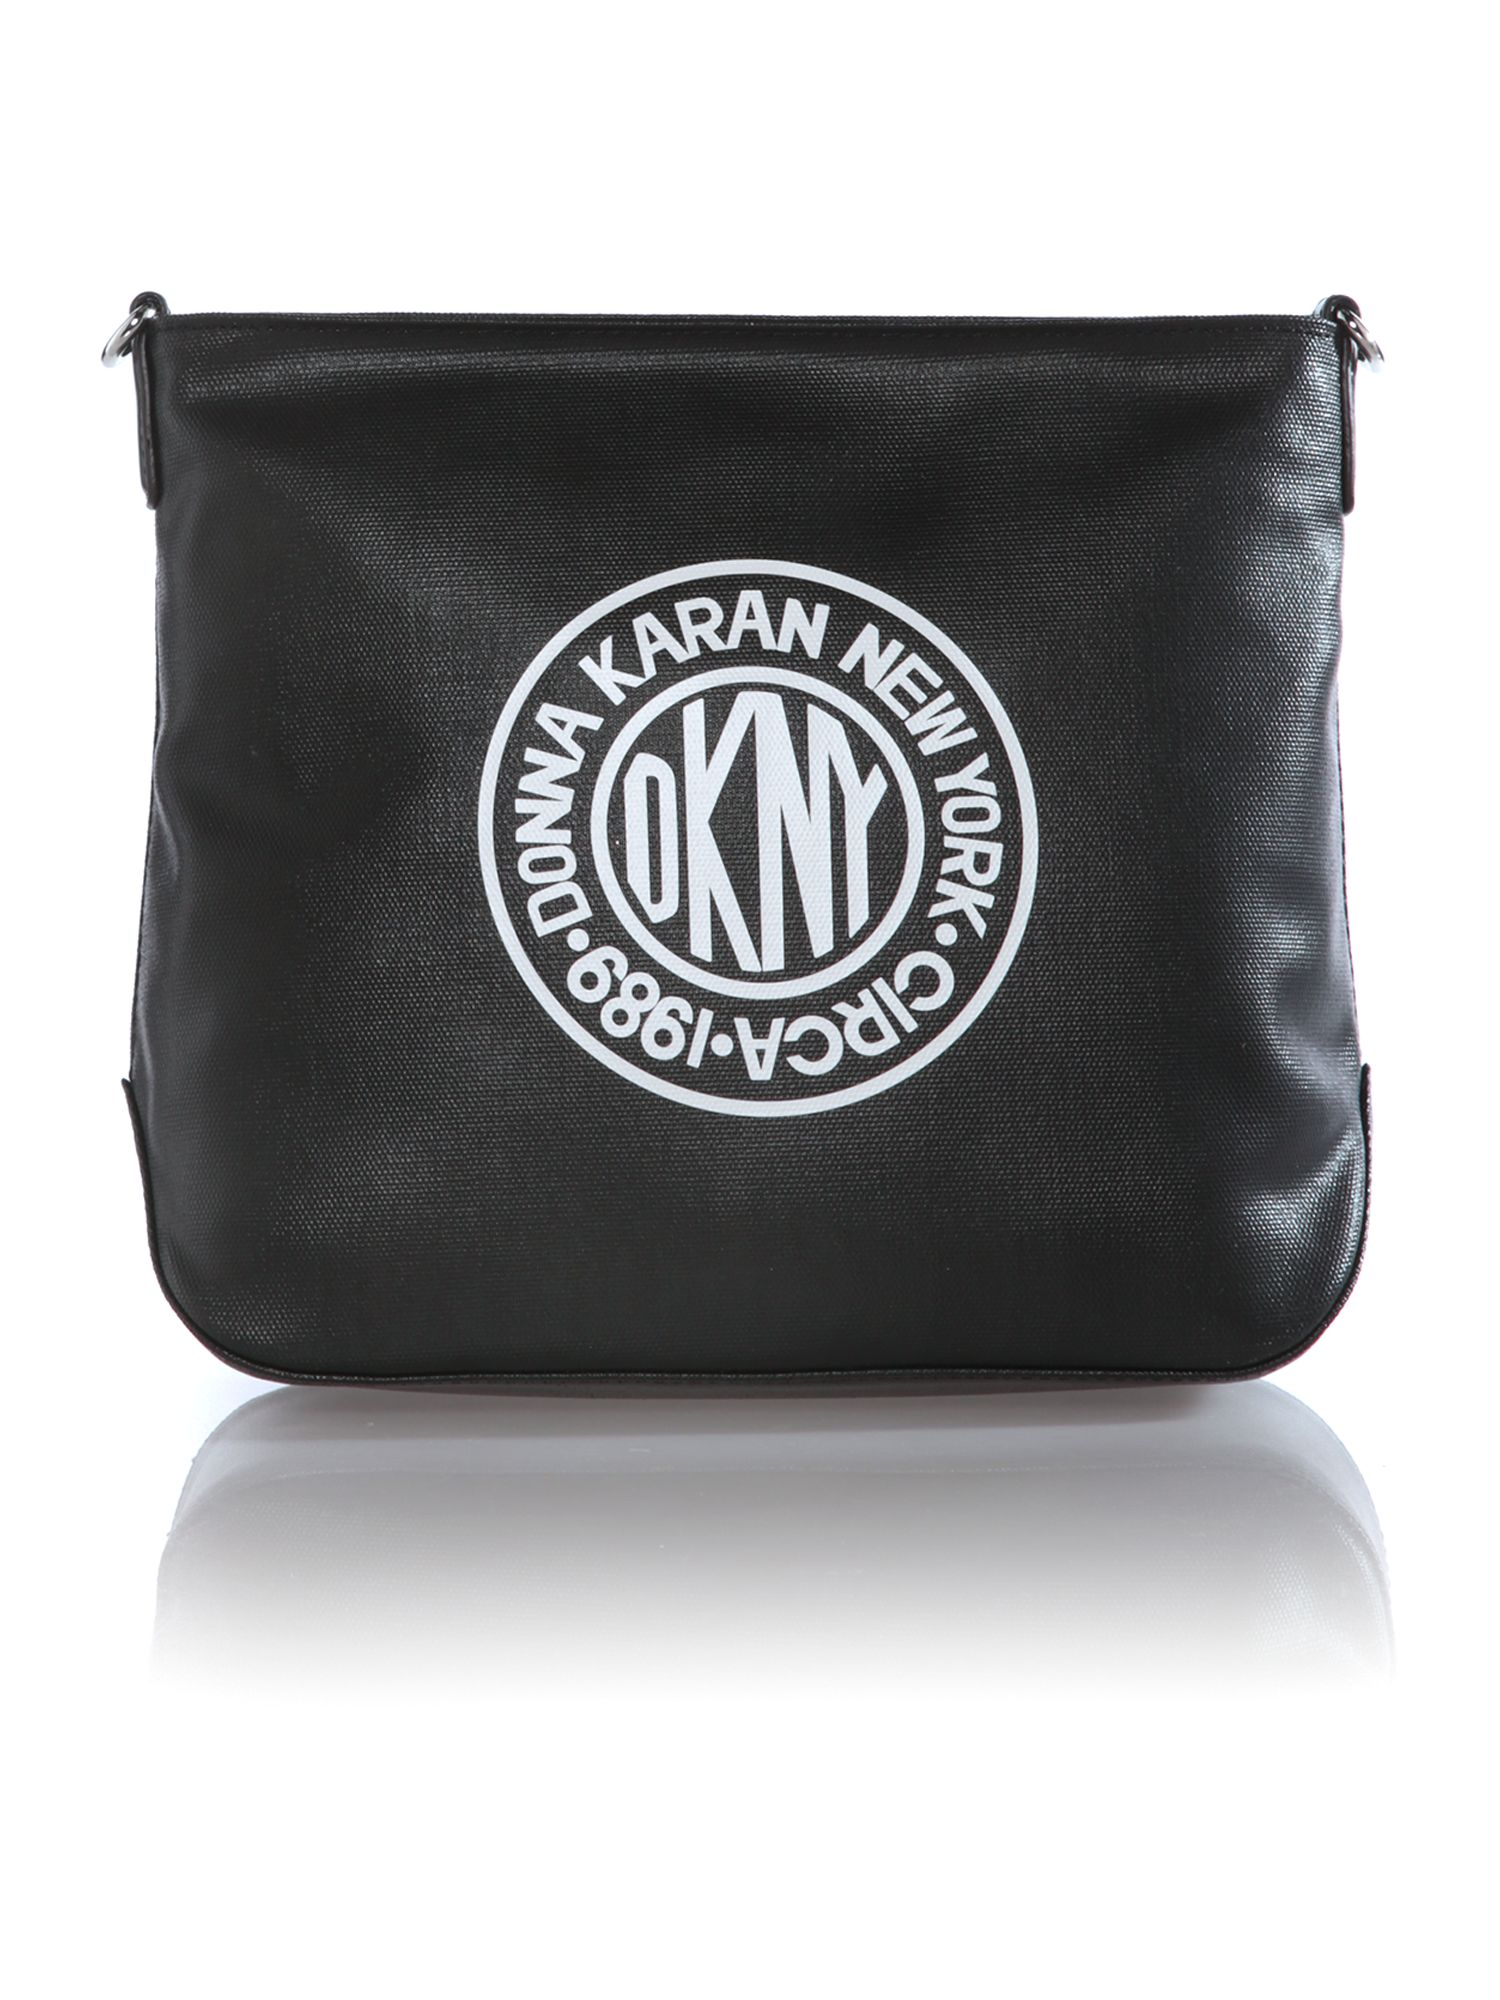 Canvas logo black small crossbody